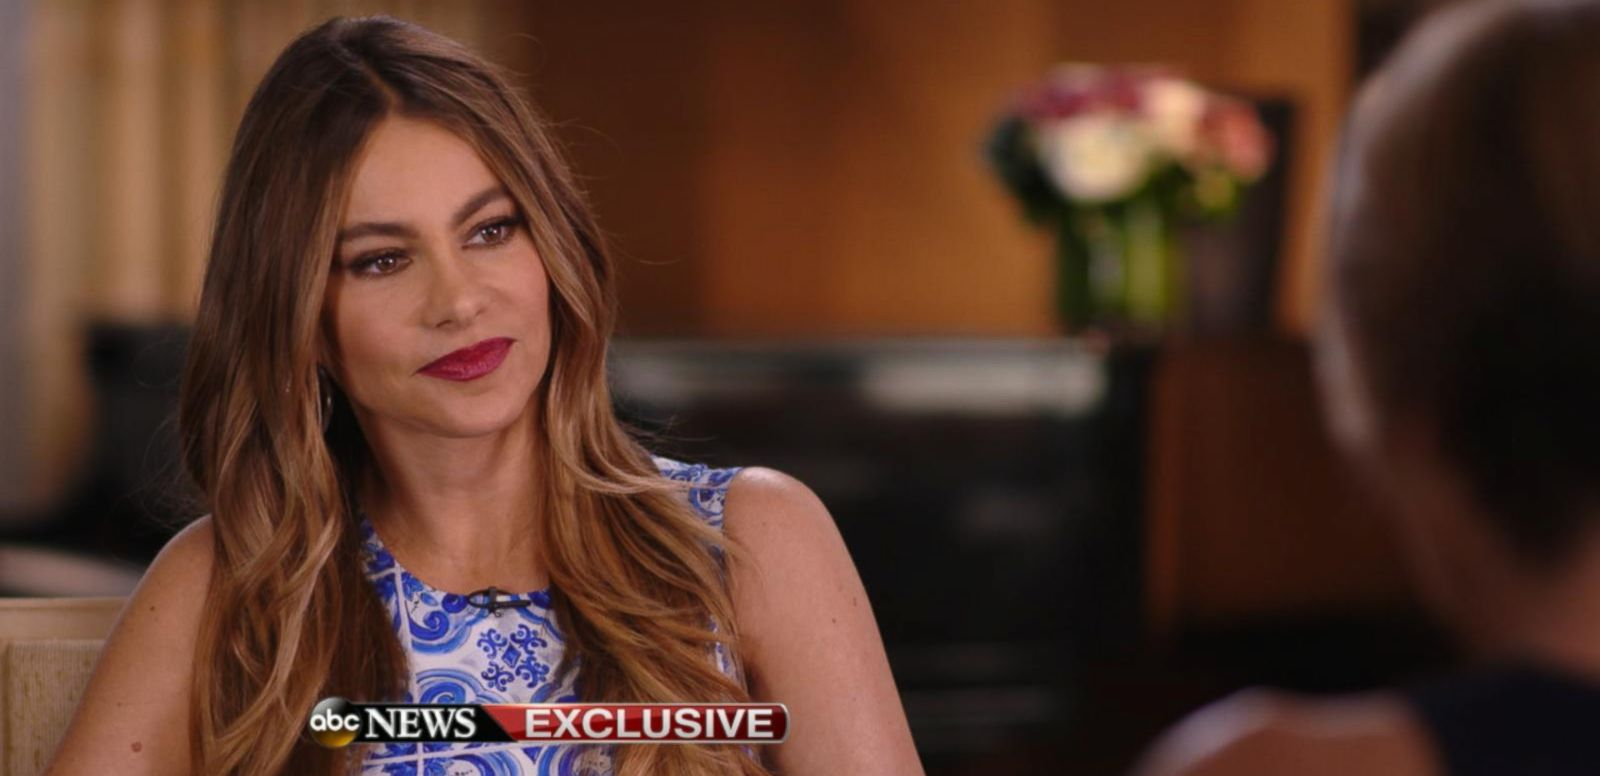 """VIDEO: The """"Hot Pursuit"""" star says it's the """"last time"""" she hopes to discuss the legal battle with her ex-fiancé Nick Loeb."""